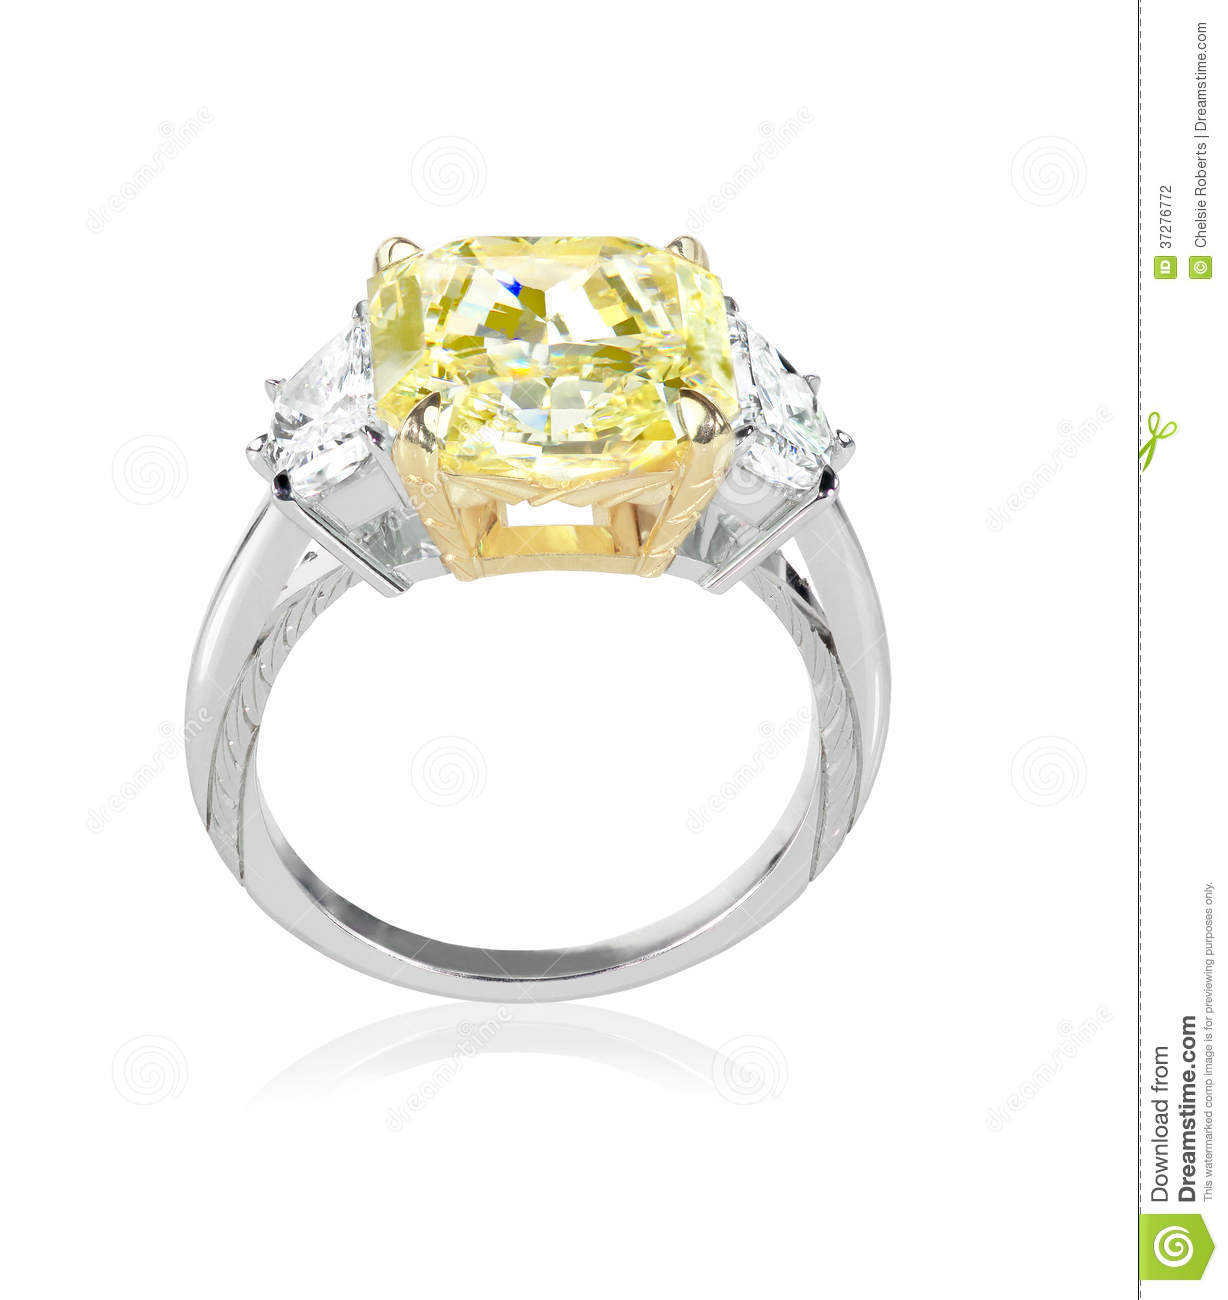 Carat Square Cut Diamond Engagement Ring